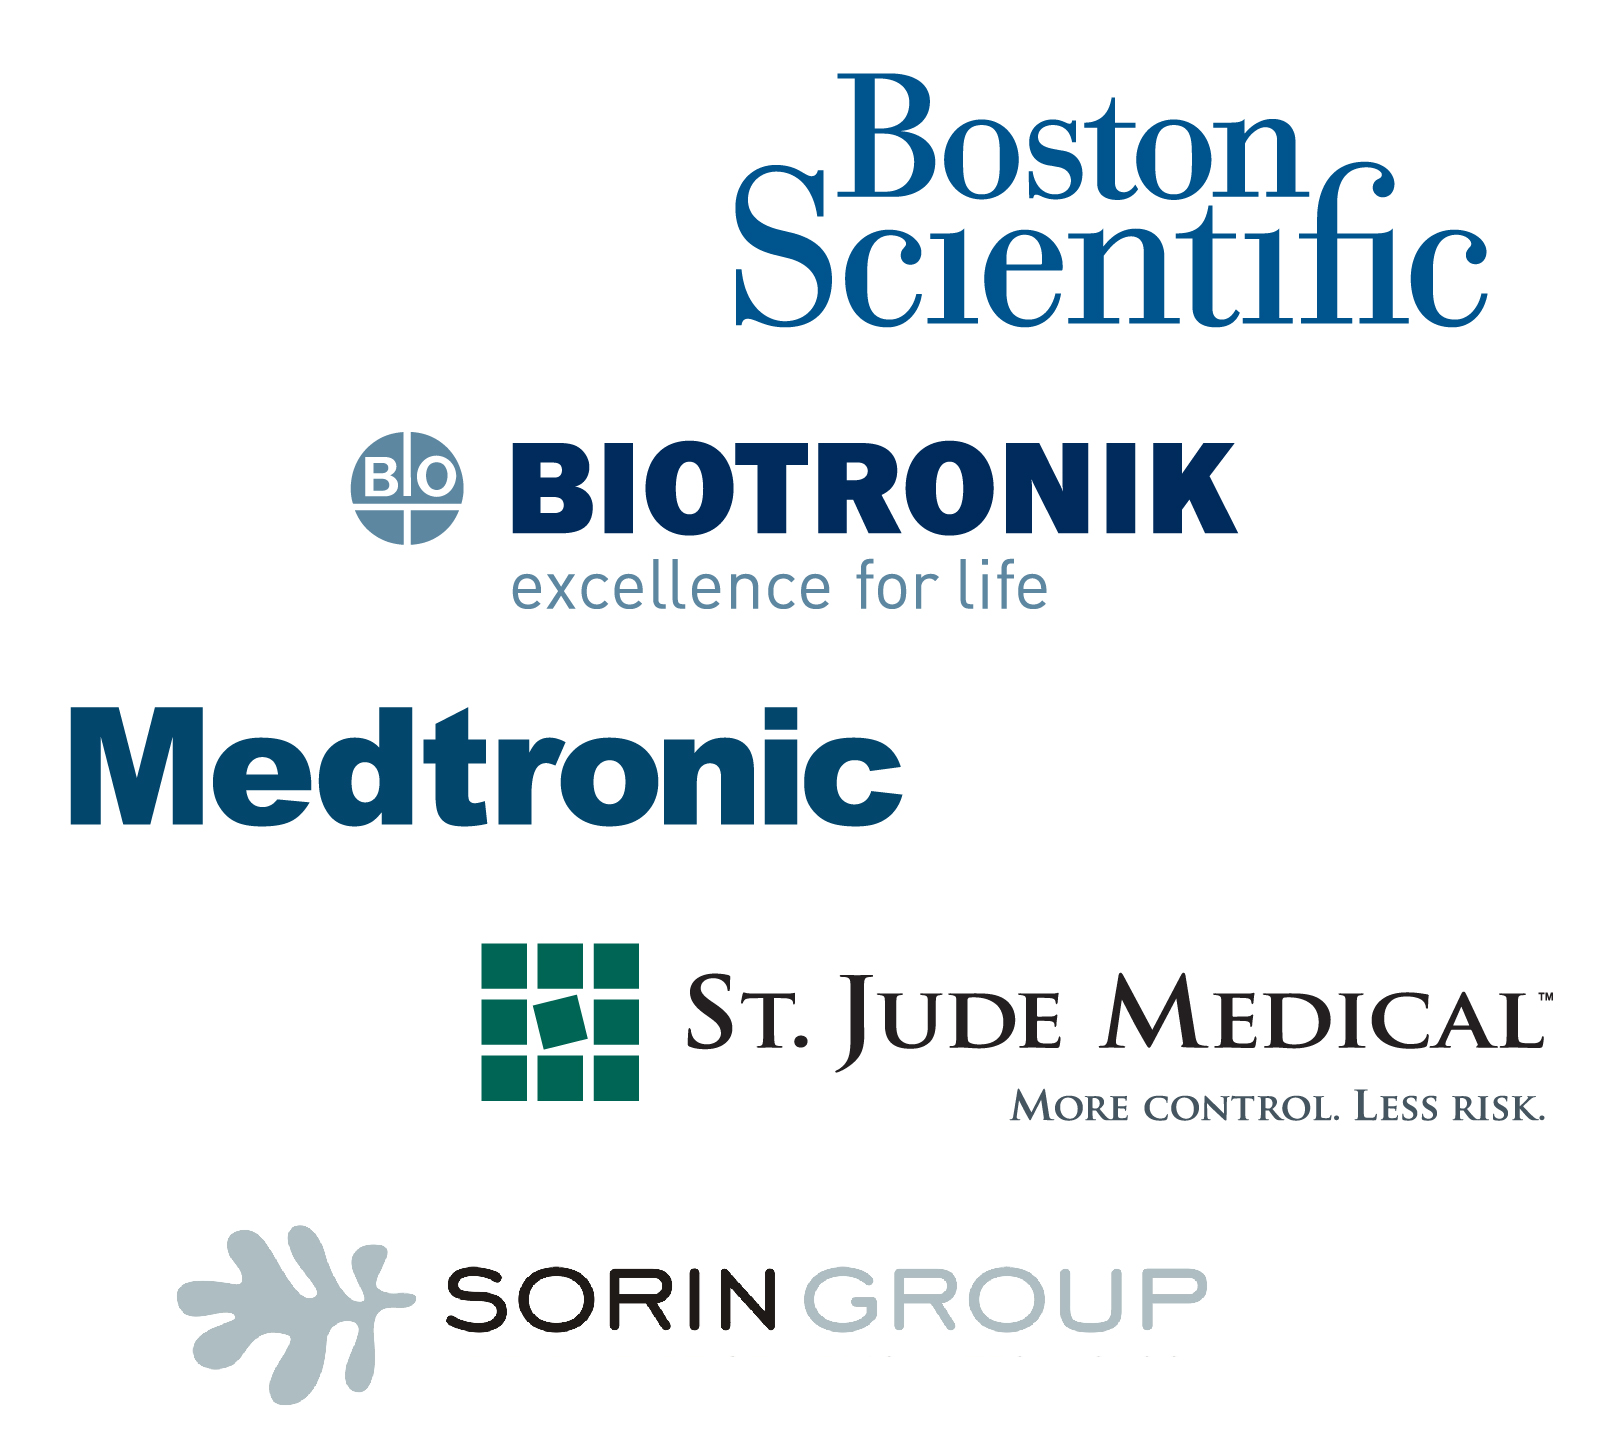 Vendor-Neutral OneView CRM supports monitoring and reporting on thousands of devices for Biotronik, Boston Scientific, Medtronic, Sorin Group and St. Jude Medical